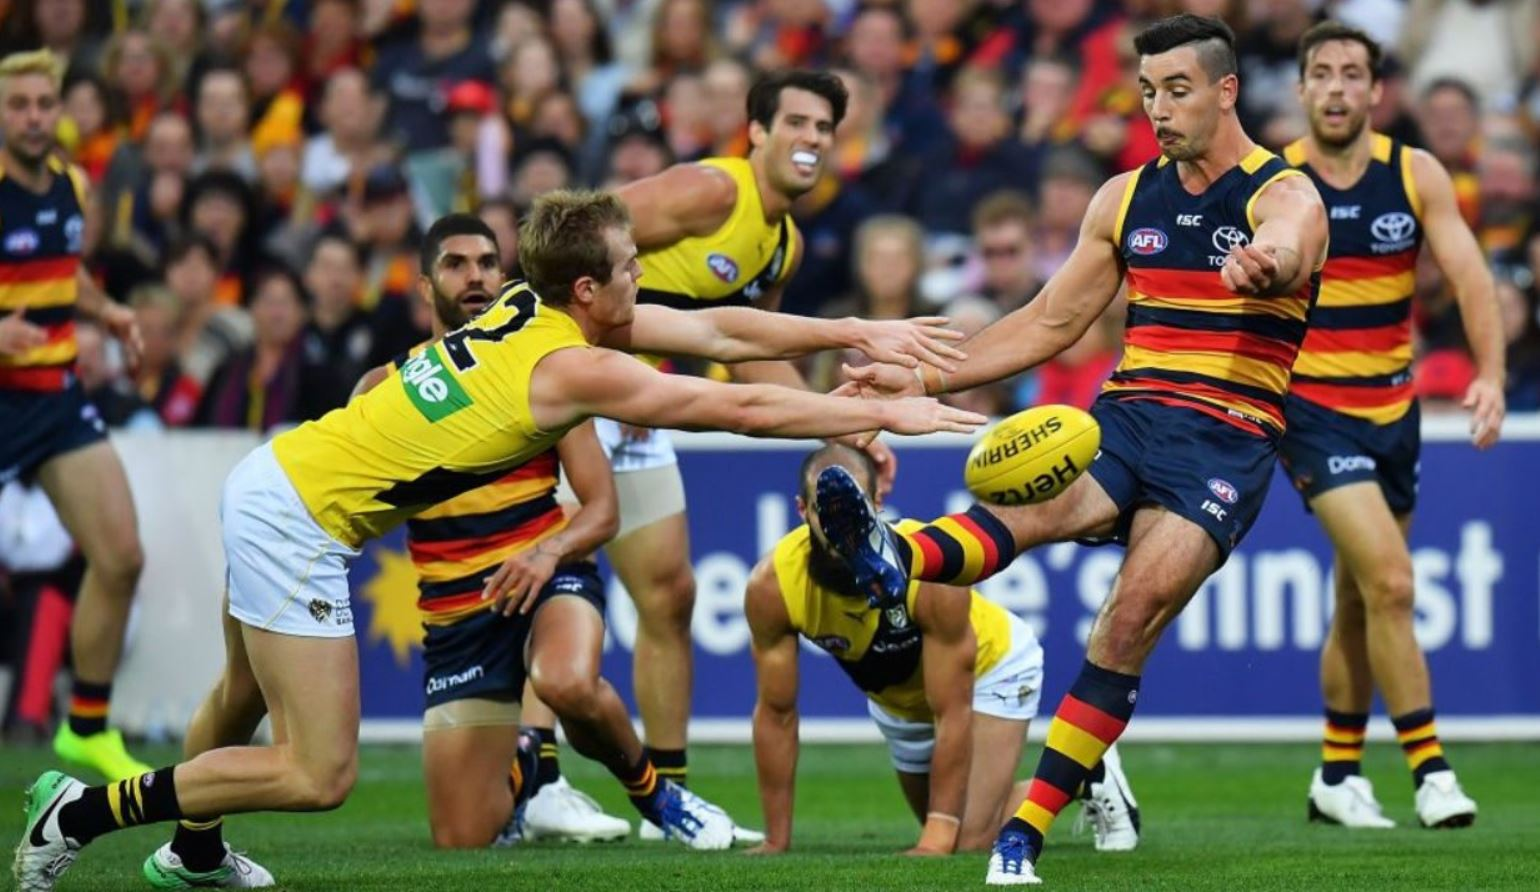 AFL Daily Fantasy Strategy: Steps to Success